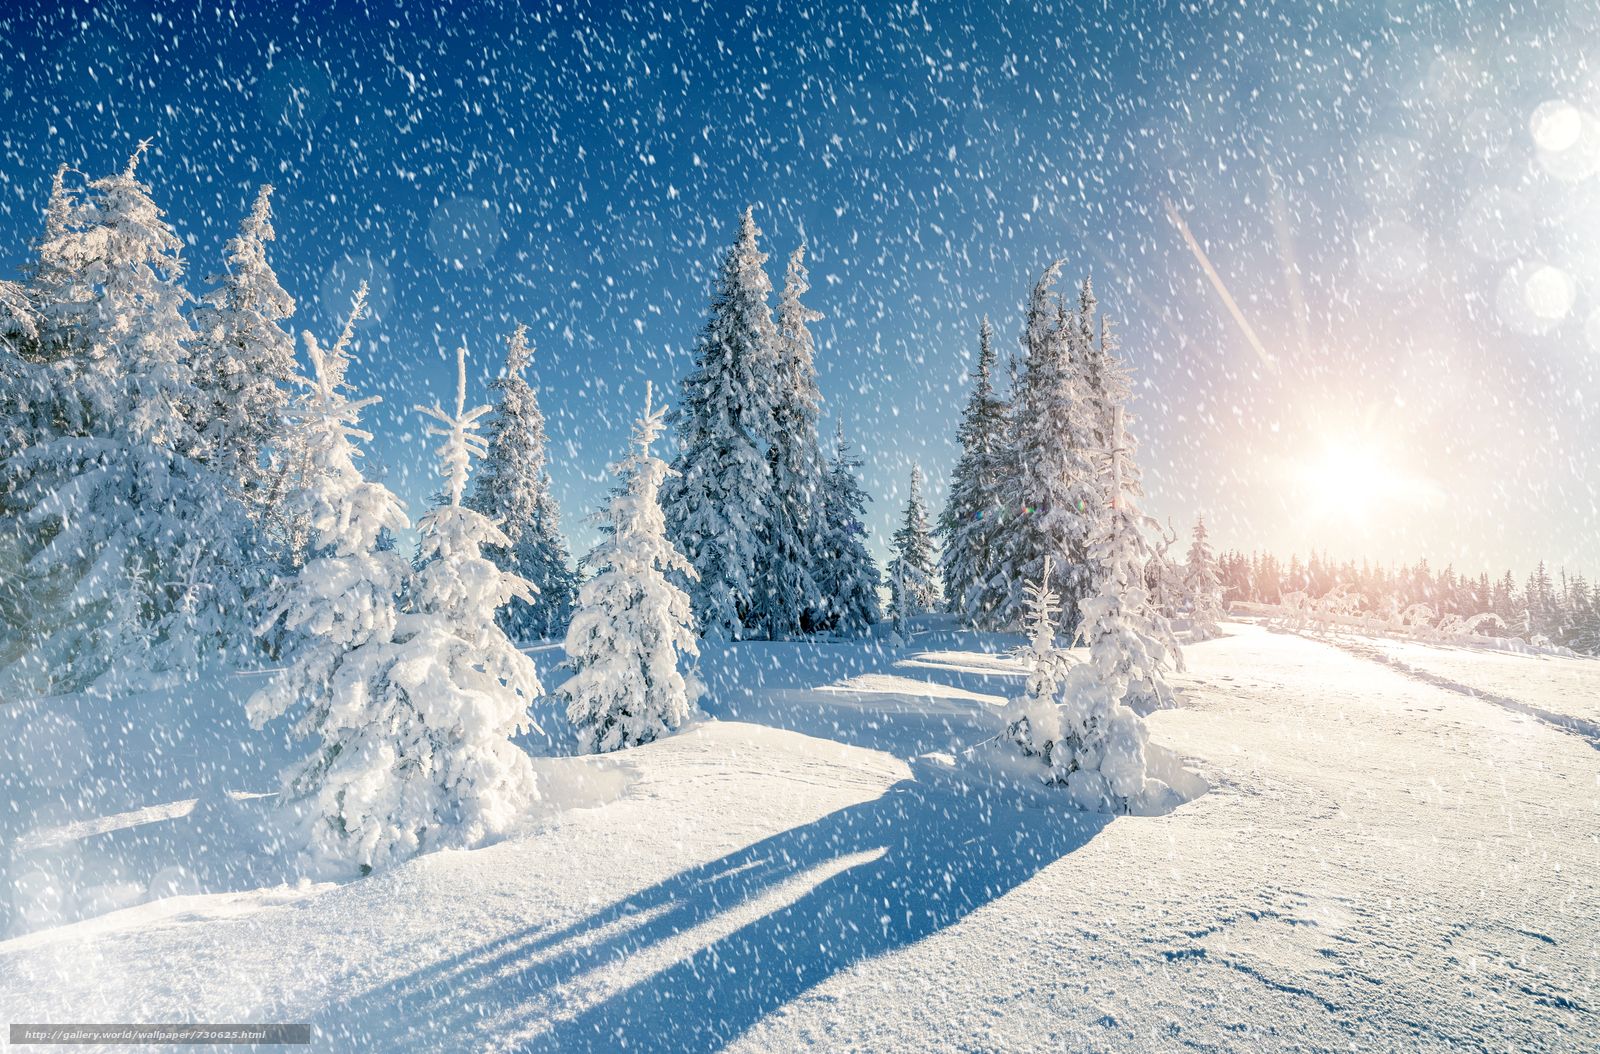 winter, snow, snowdrifts, trees, landscape